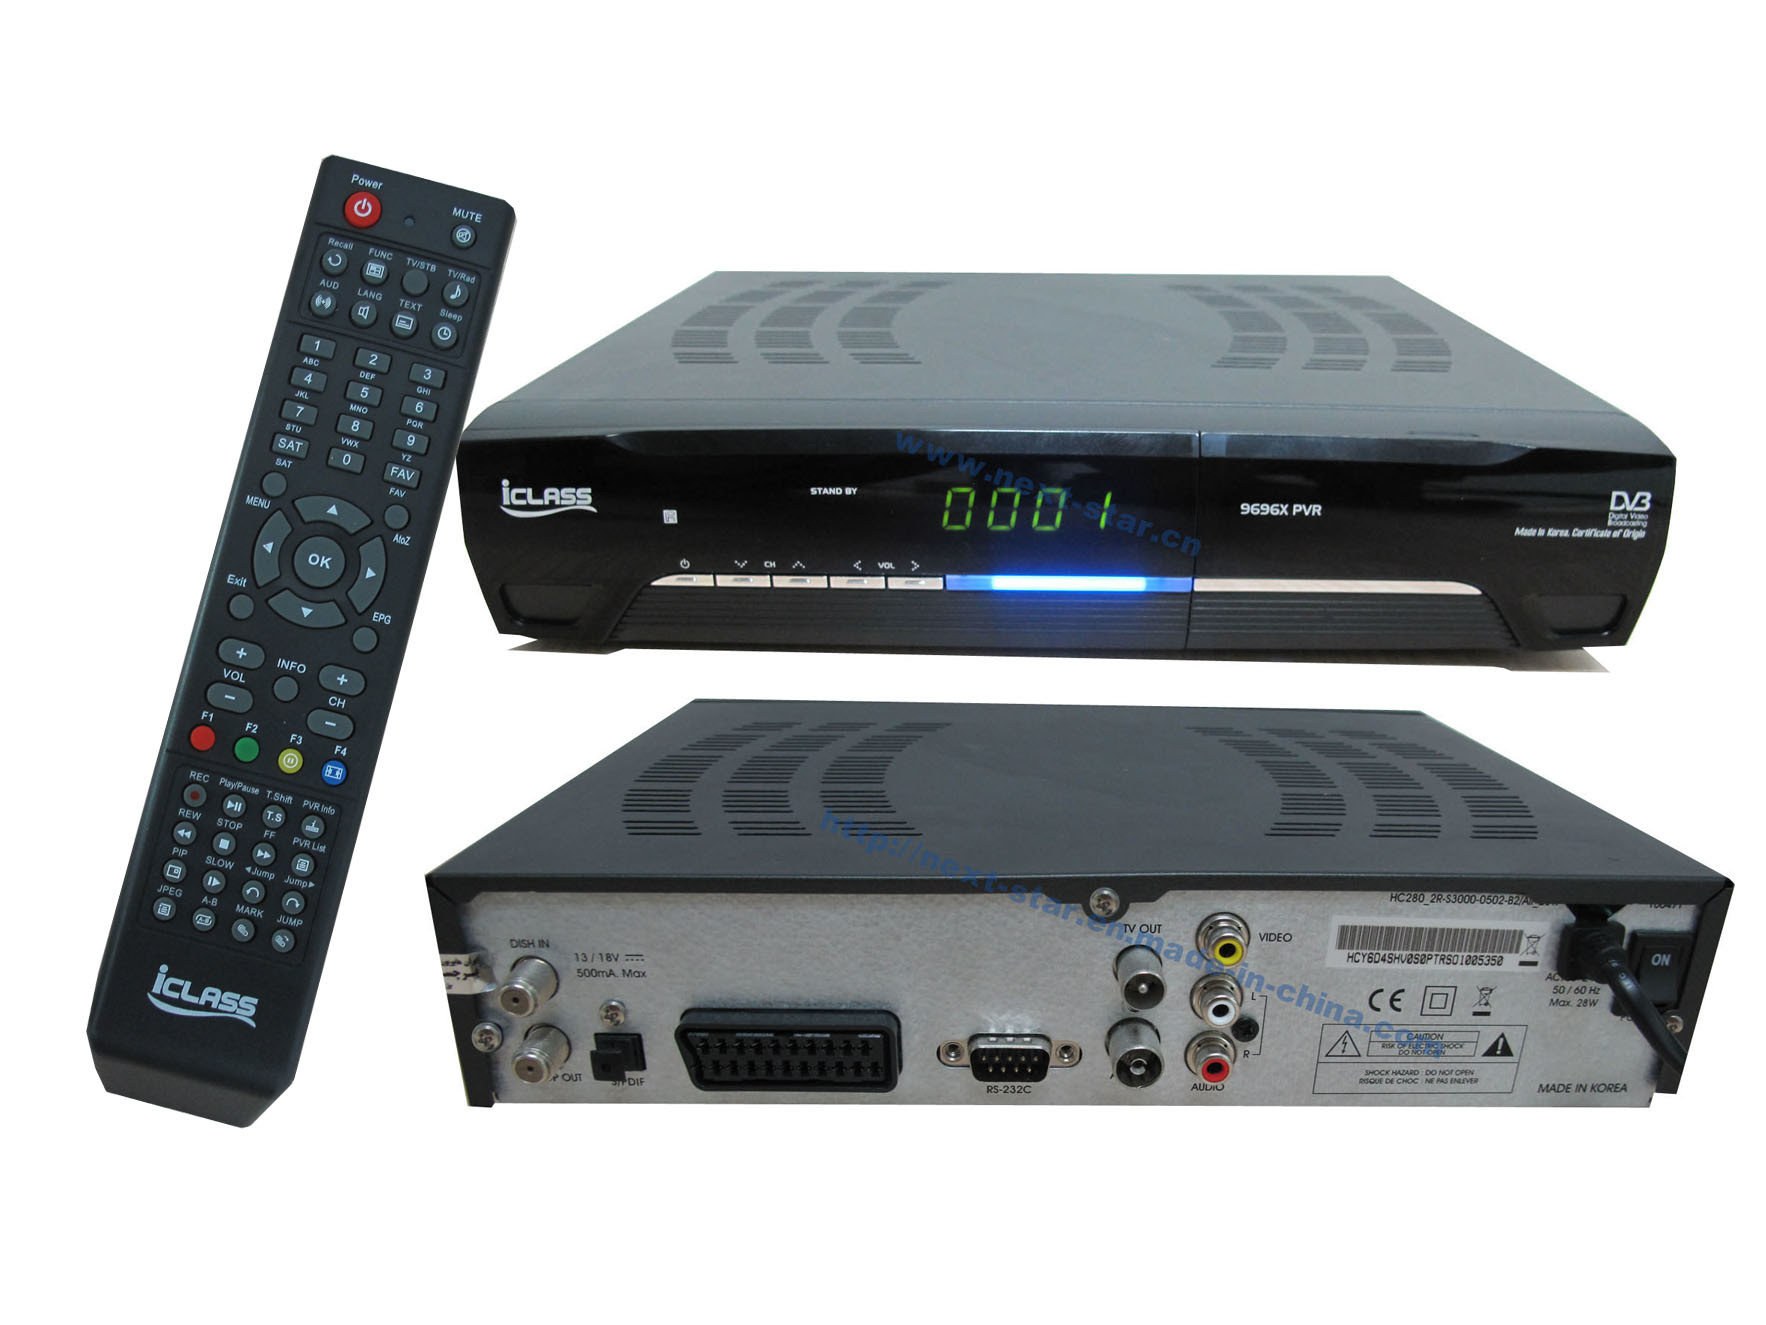 upgrade receiver iclass 9696x pvr free download